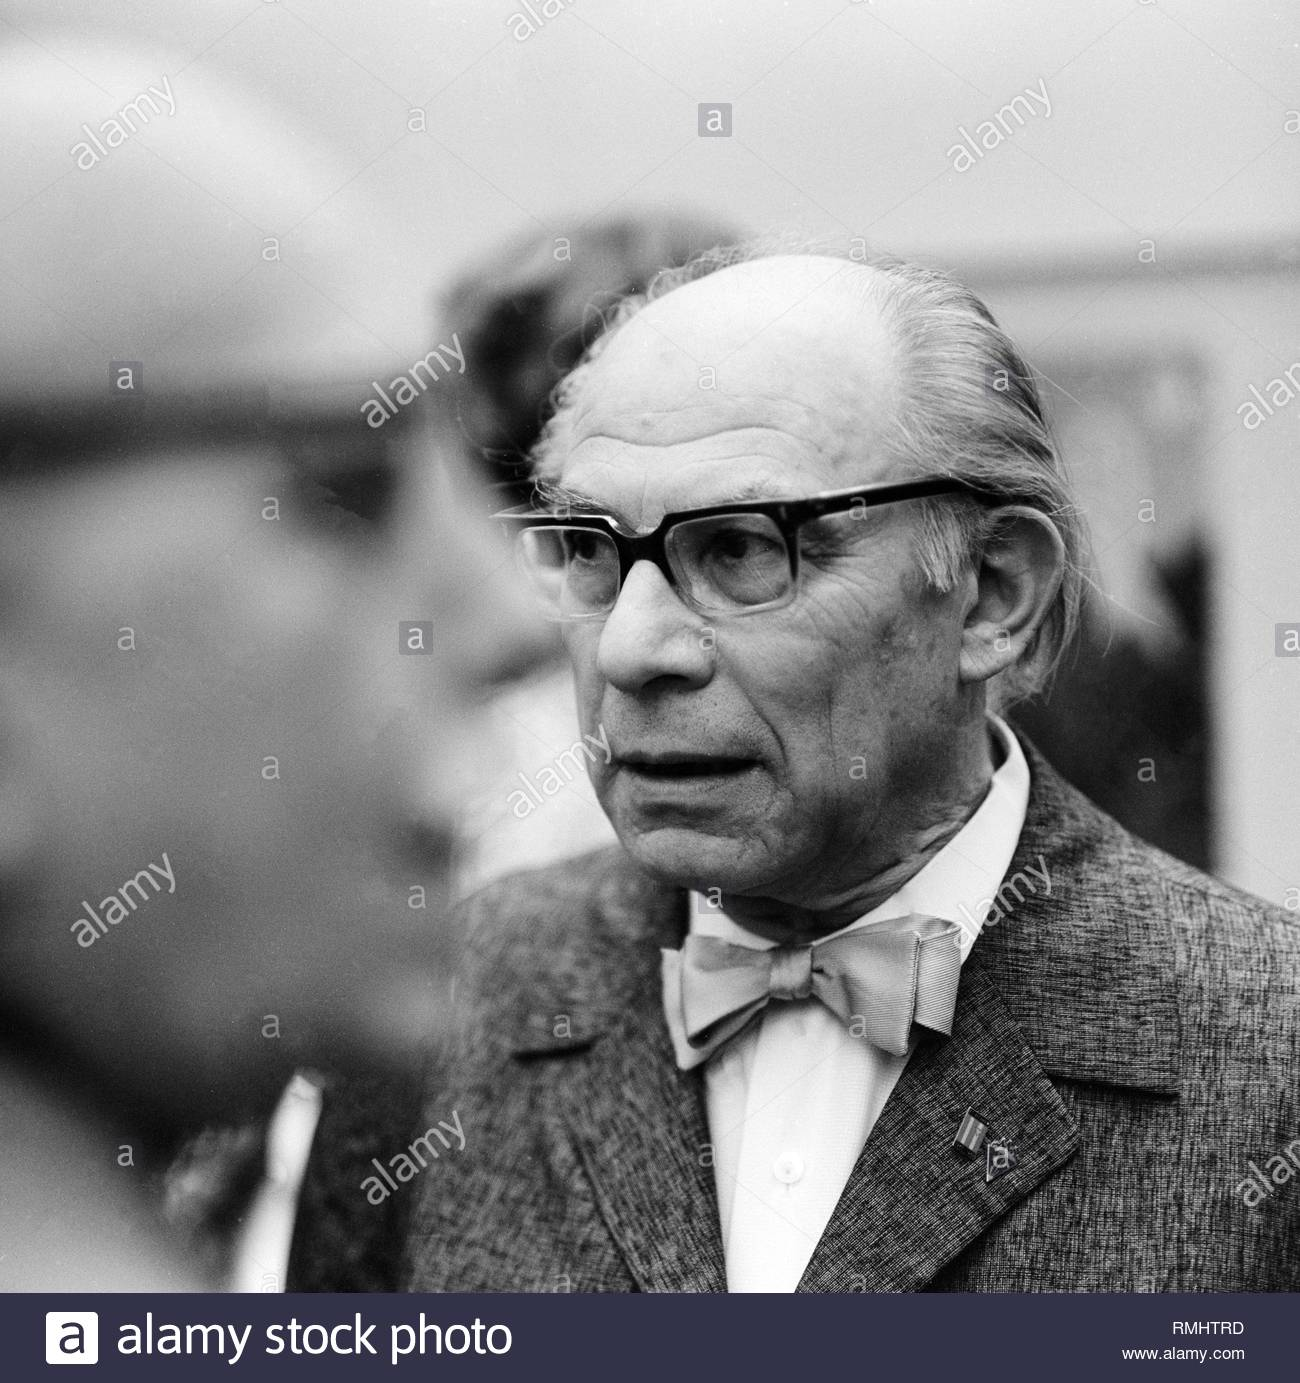 The painter, draftsman, printmaker and cartoonist Leo Haas (1901 - 1983) in Berlin, the former capital of the GDR, German Democratic Republic. - Stock Image